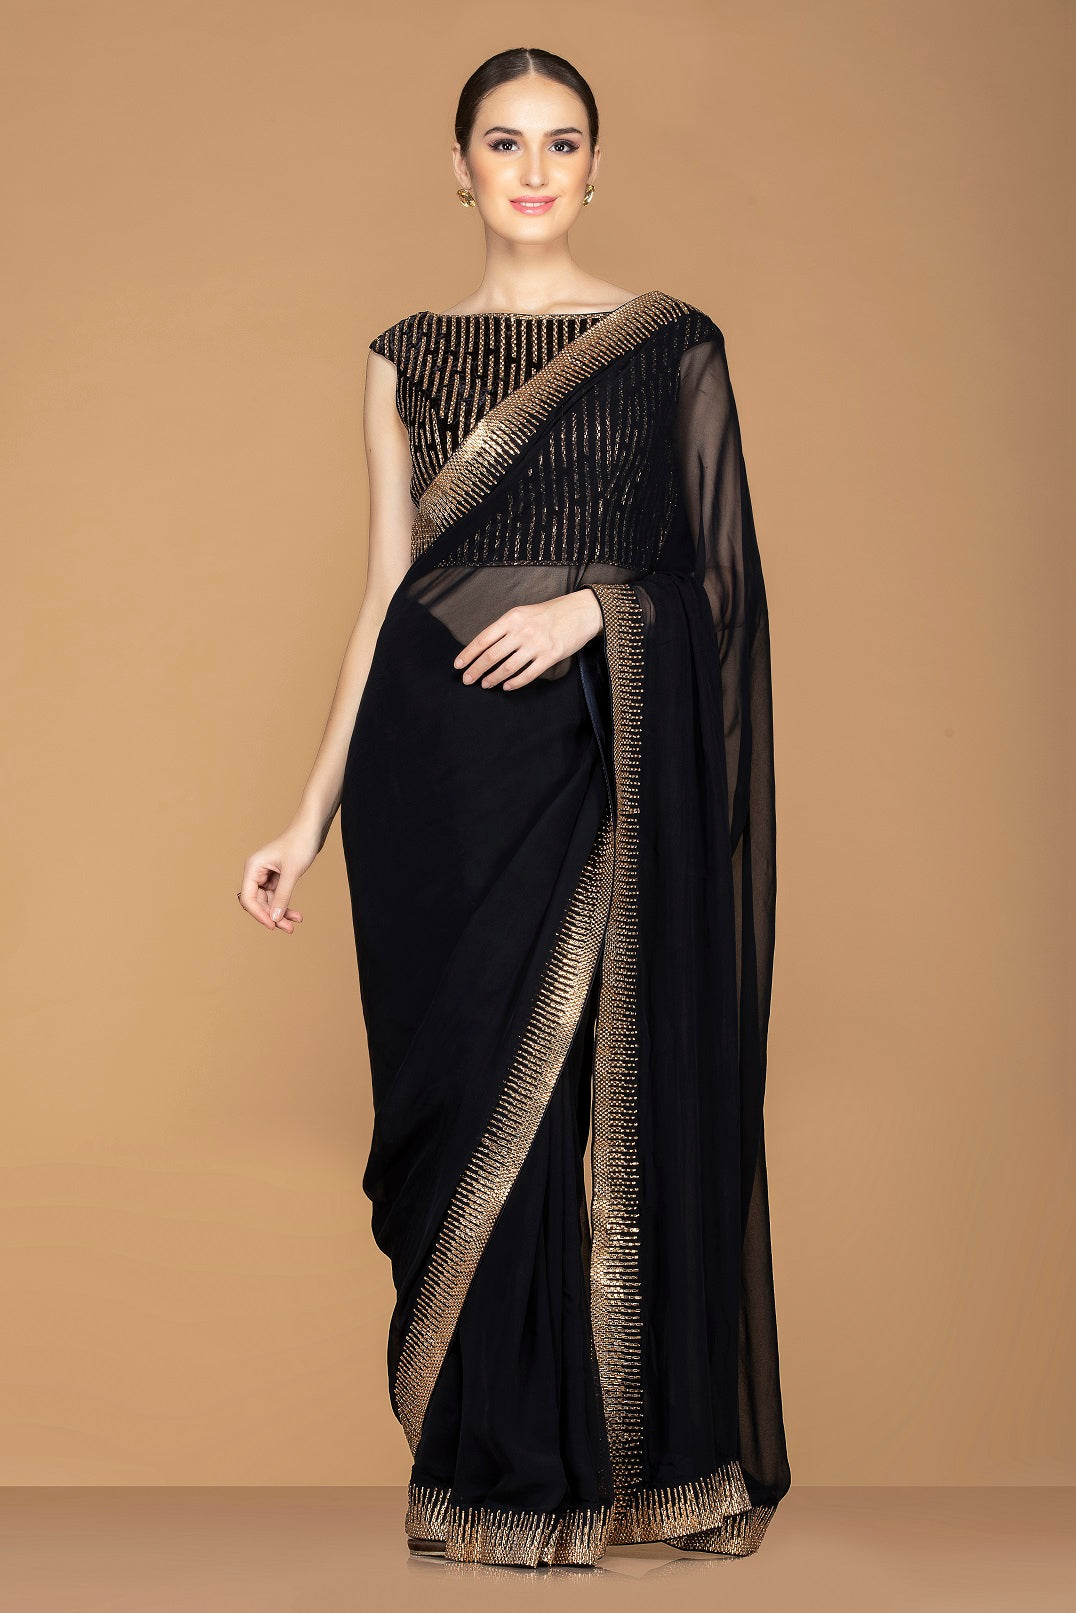 Buy ravishing black designer embroidered saree online in USA with black embroidered saree blouse. Champion ethnic fashion with a splendid collection of designer sarees, embroidered sarees with blouse, weddings sarees from Pure Elegance Indian fashion store in USA.-full view